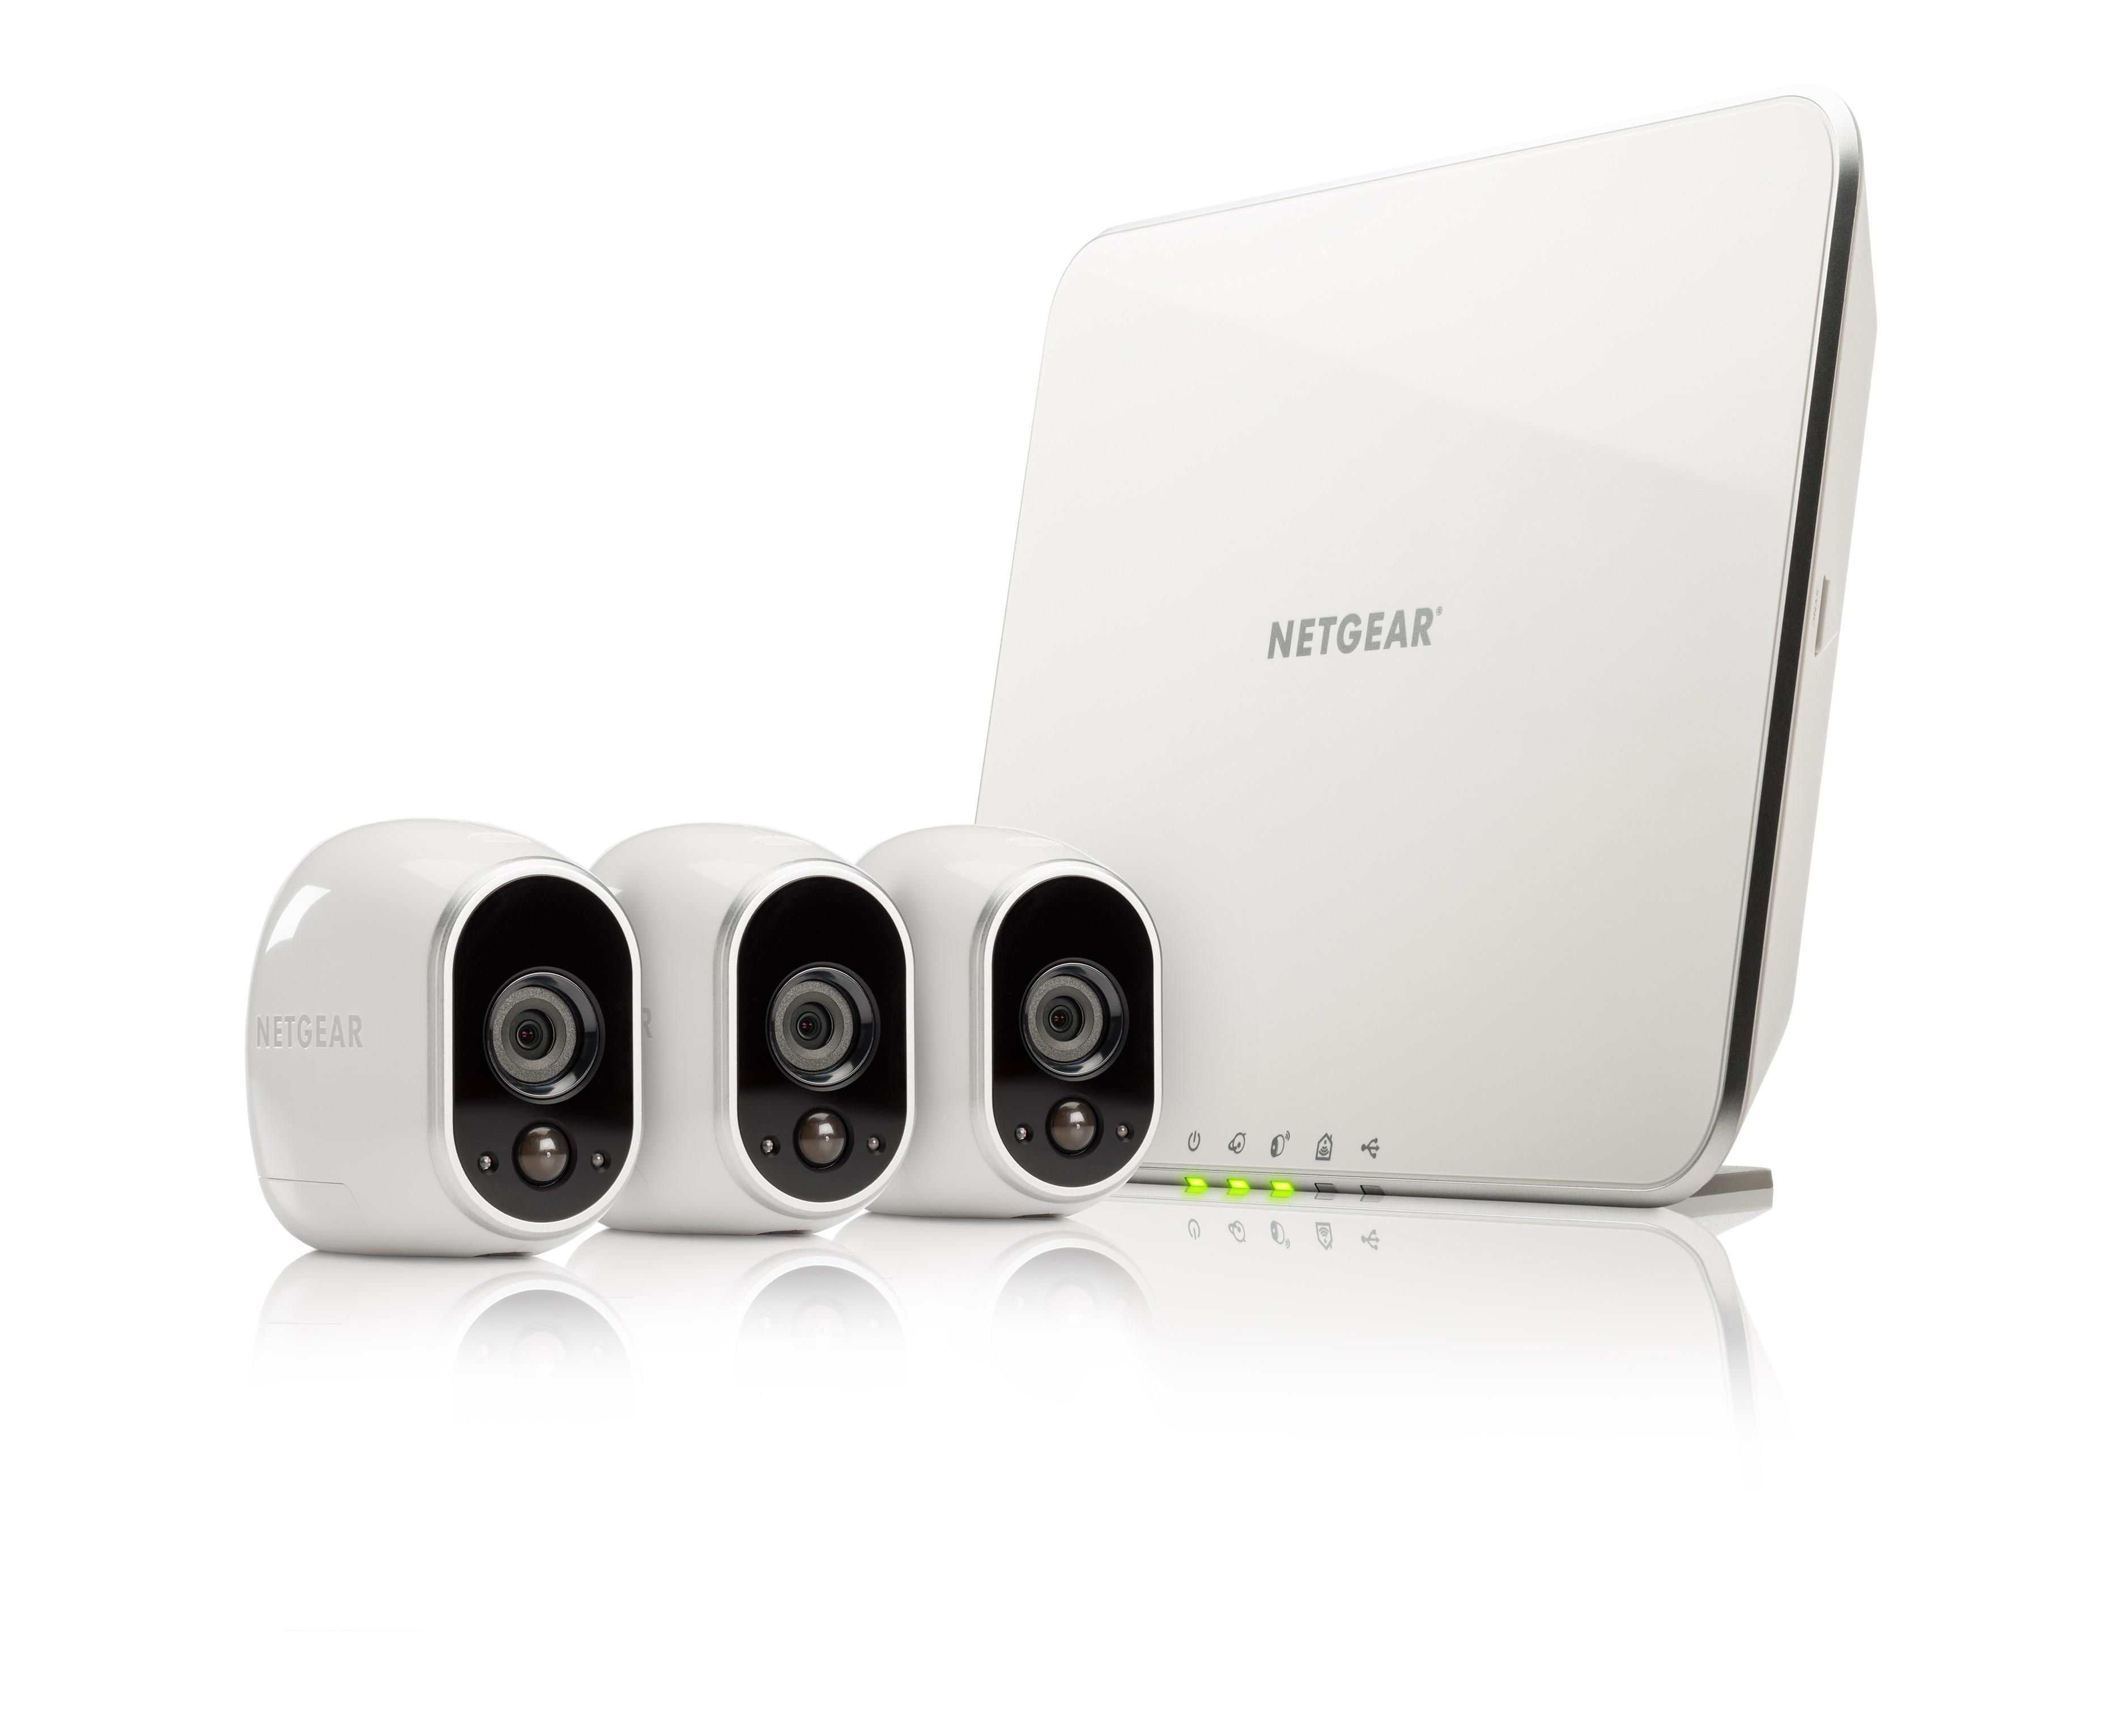 netgear arlo vms3330 100eus smart home 3 hd berwachung kamera sicherheitssystem im test. Black Bedroom Furniture Sets. Home Design Ideas